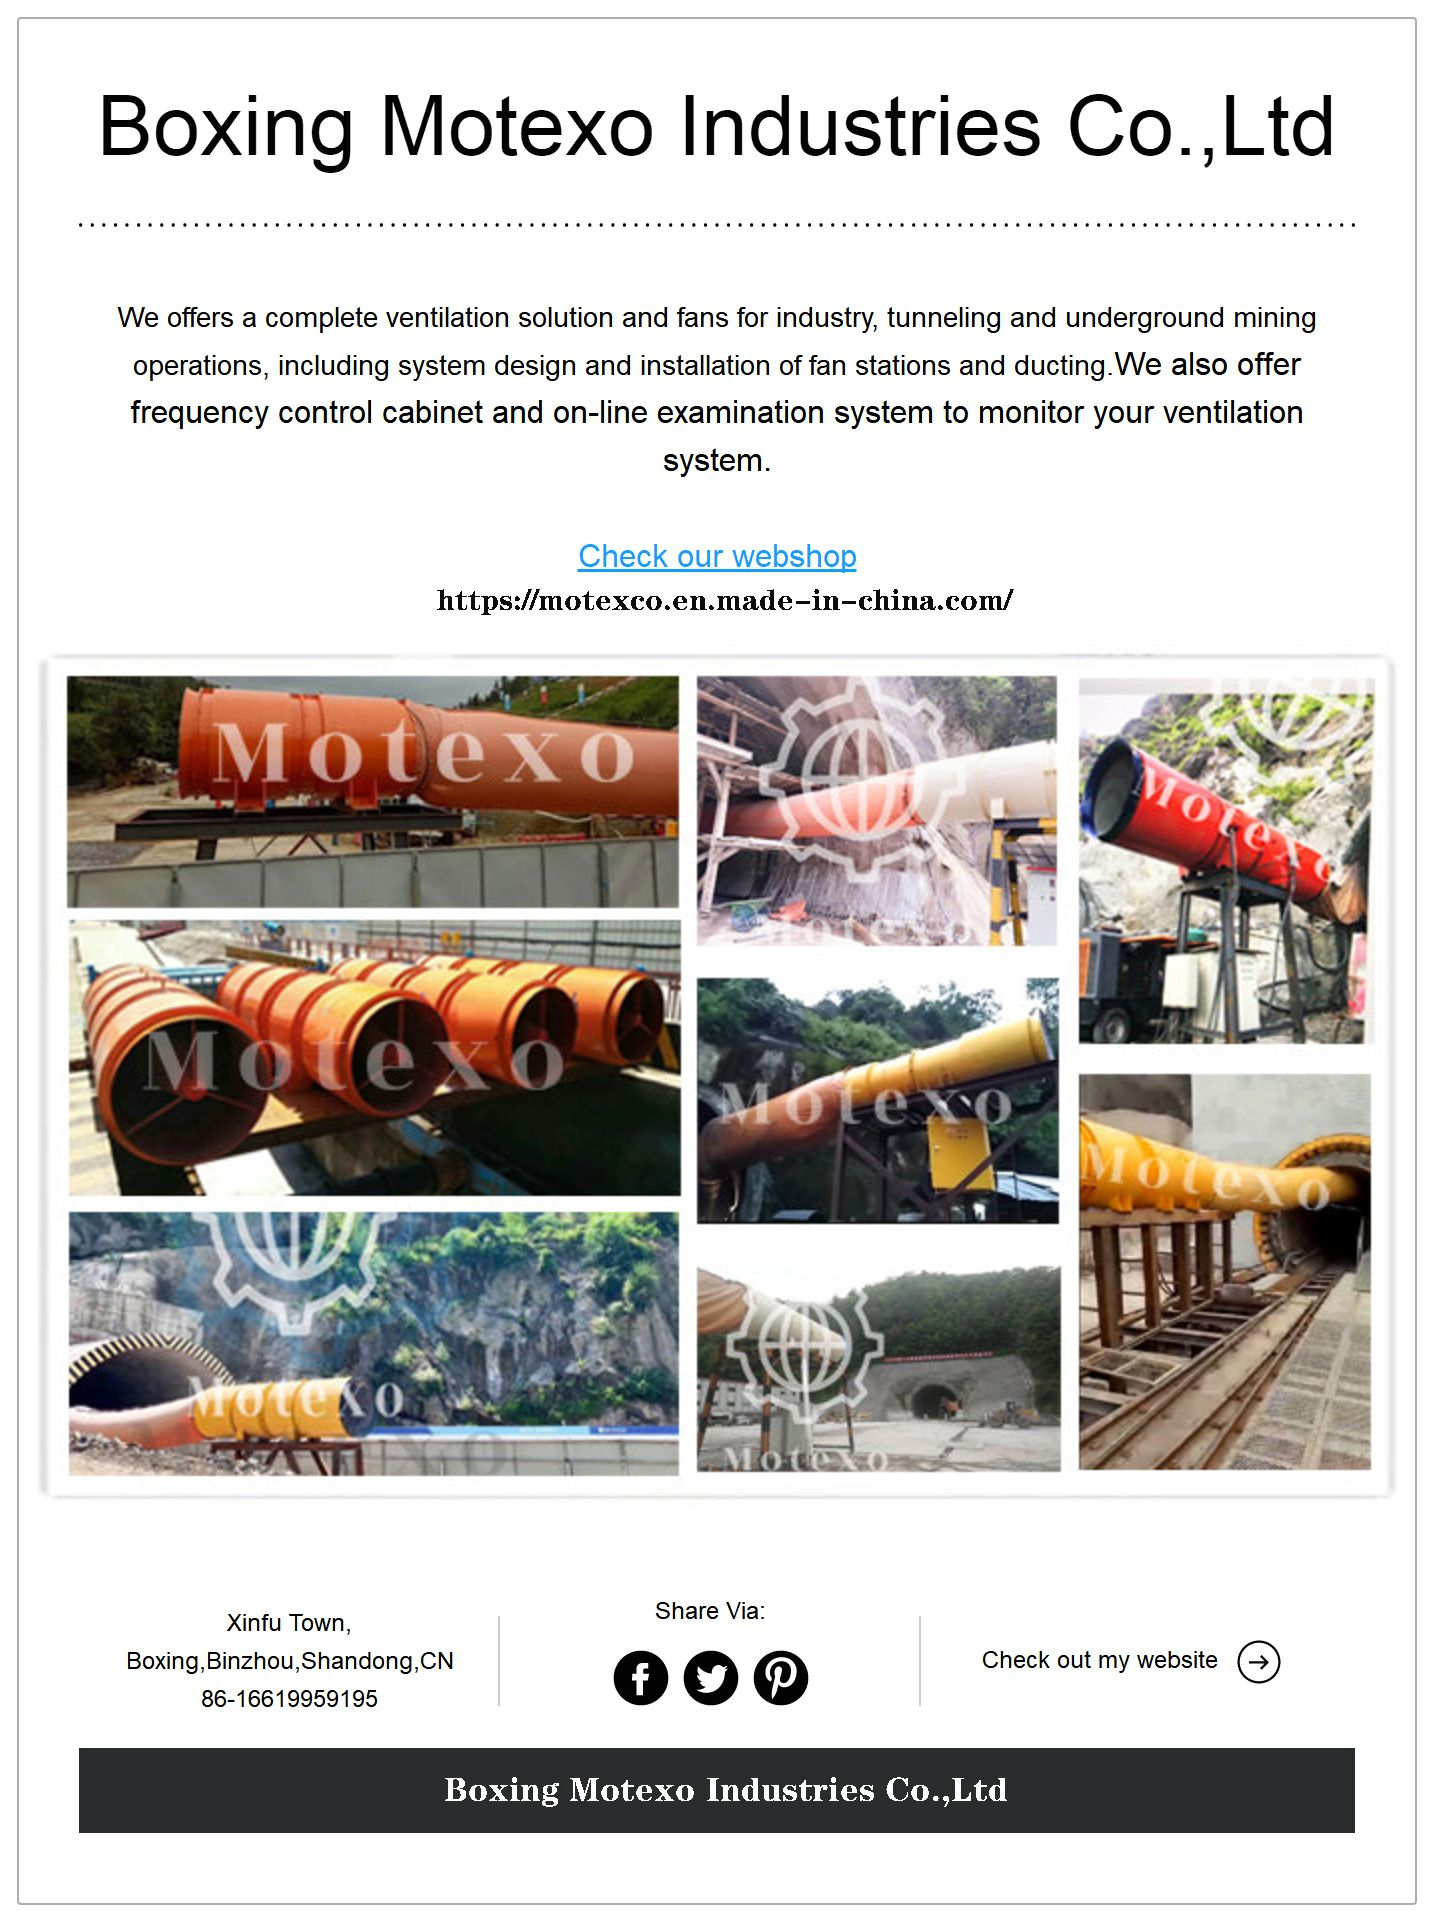 Specialist and manufacturer of mining/tunnel/industrial